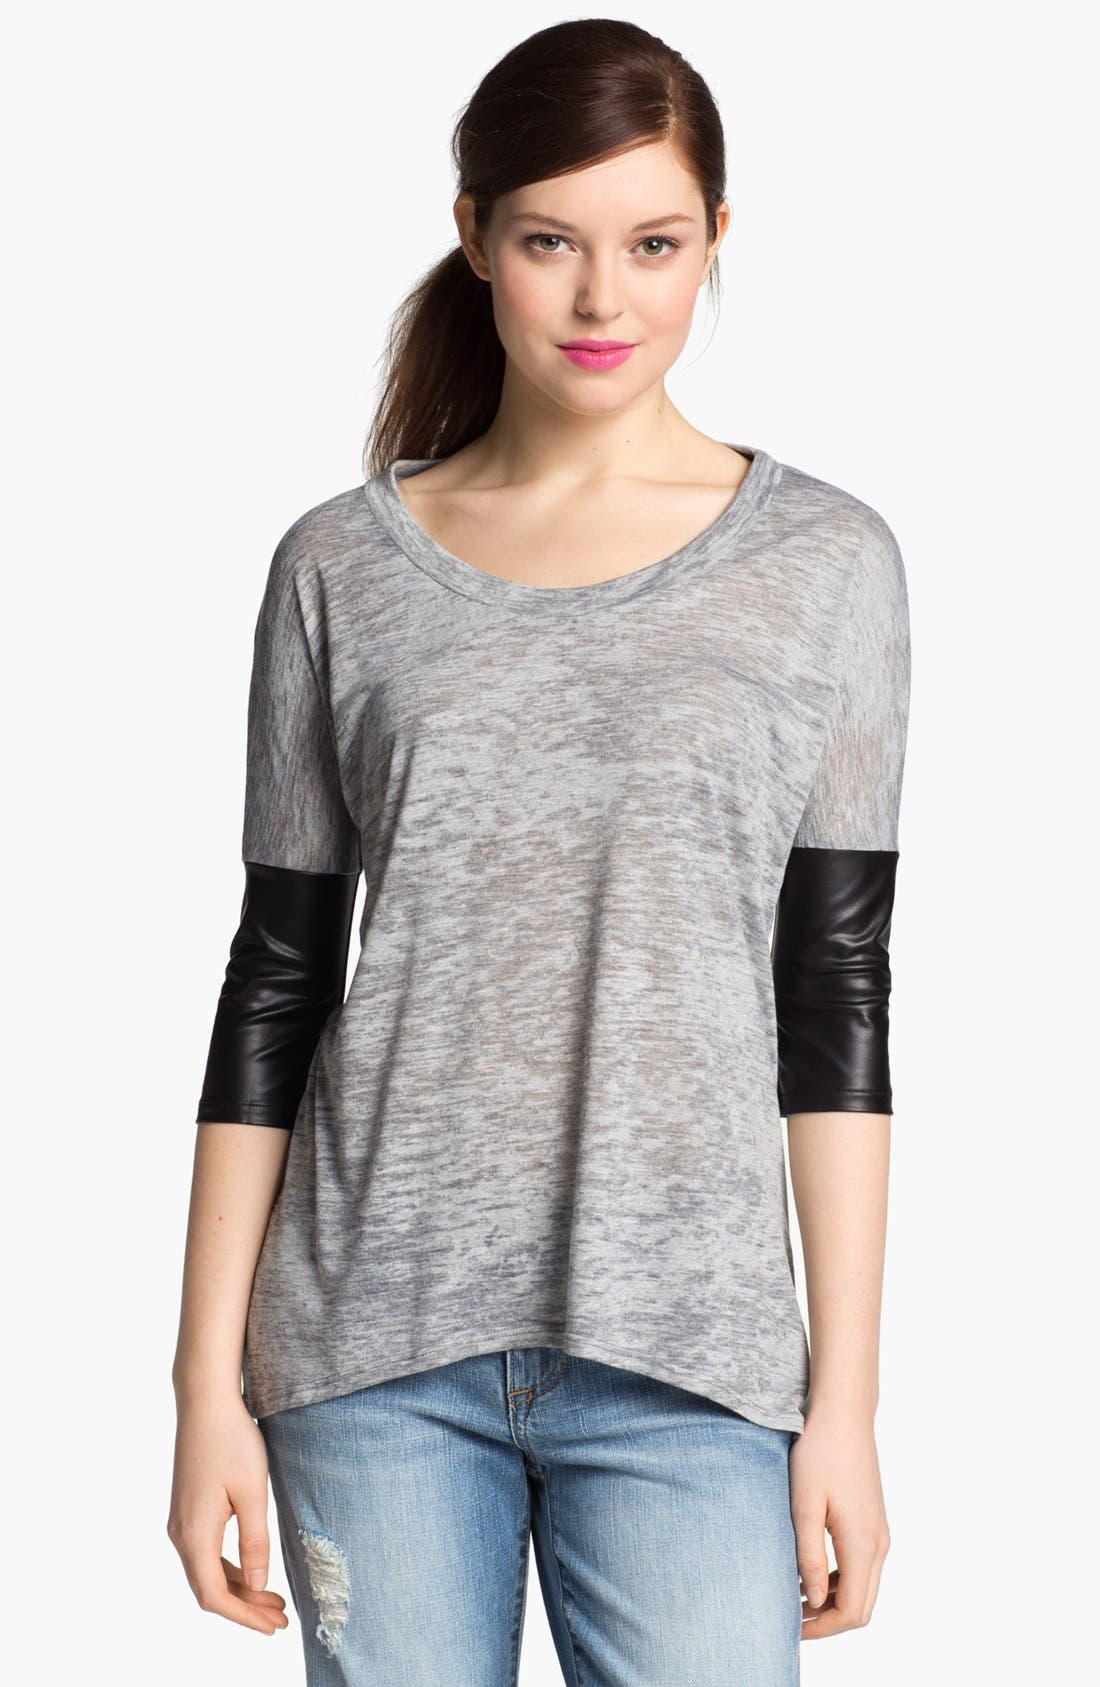 Main Image - I.Ner Faux Leather Sleeve Slub Tee